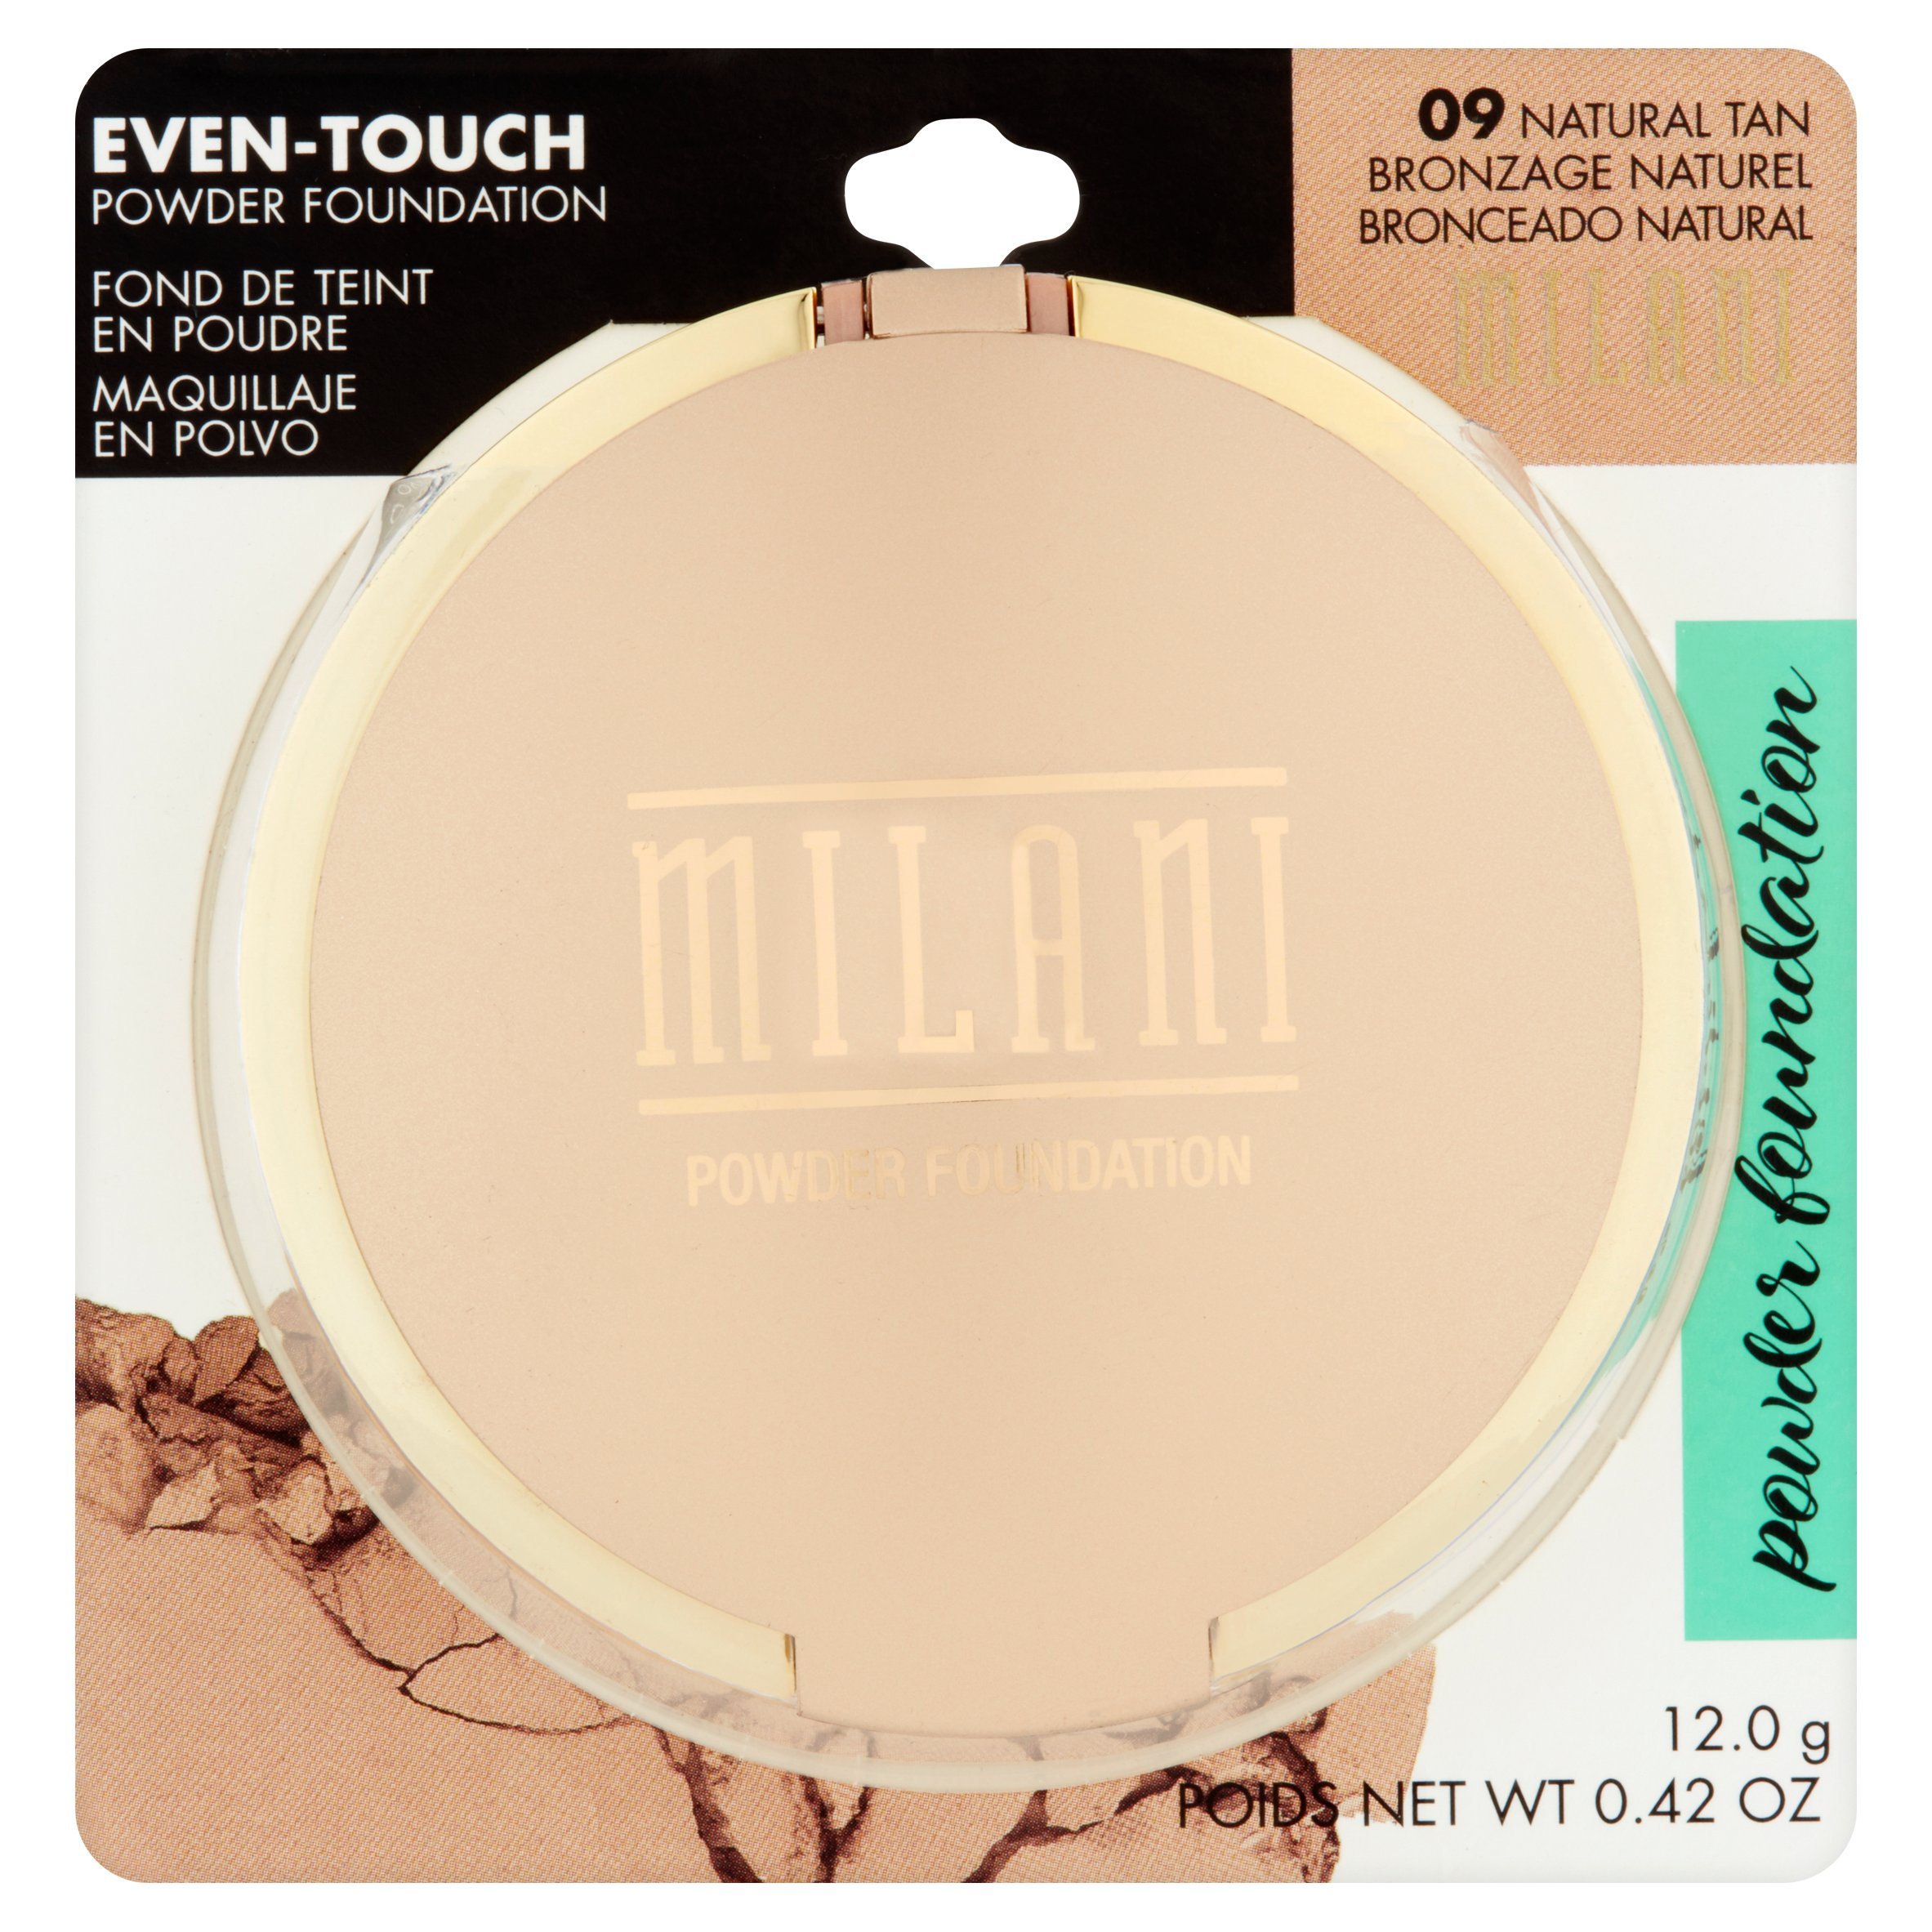 Milani Even-Touch 09 Natural Tan Powder Foundation, 0.42 oz